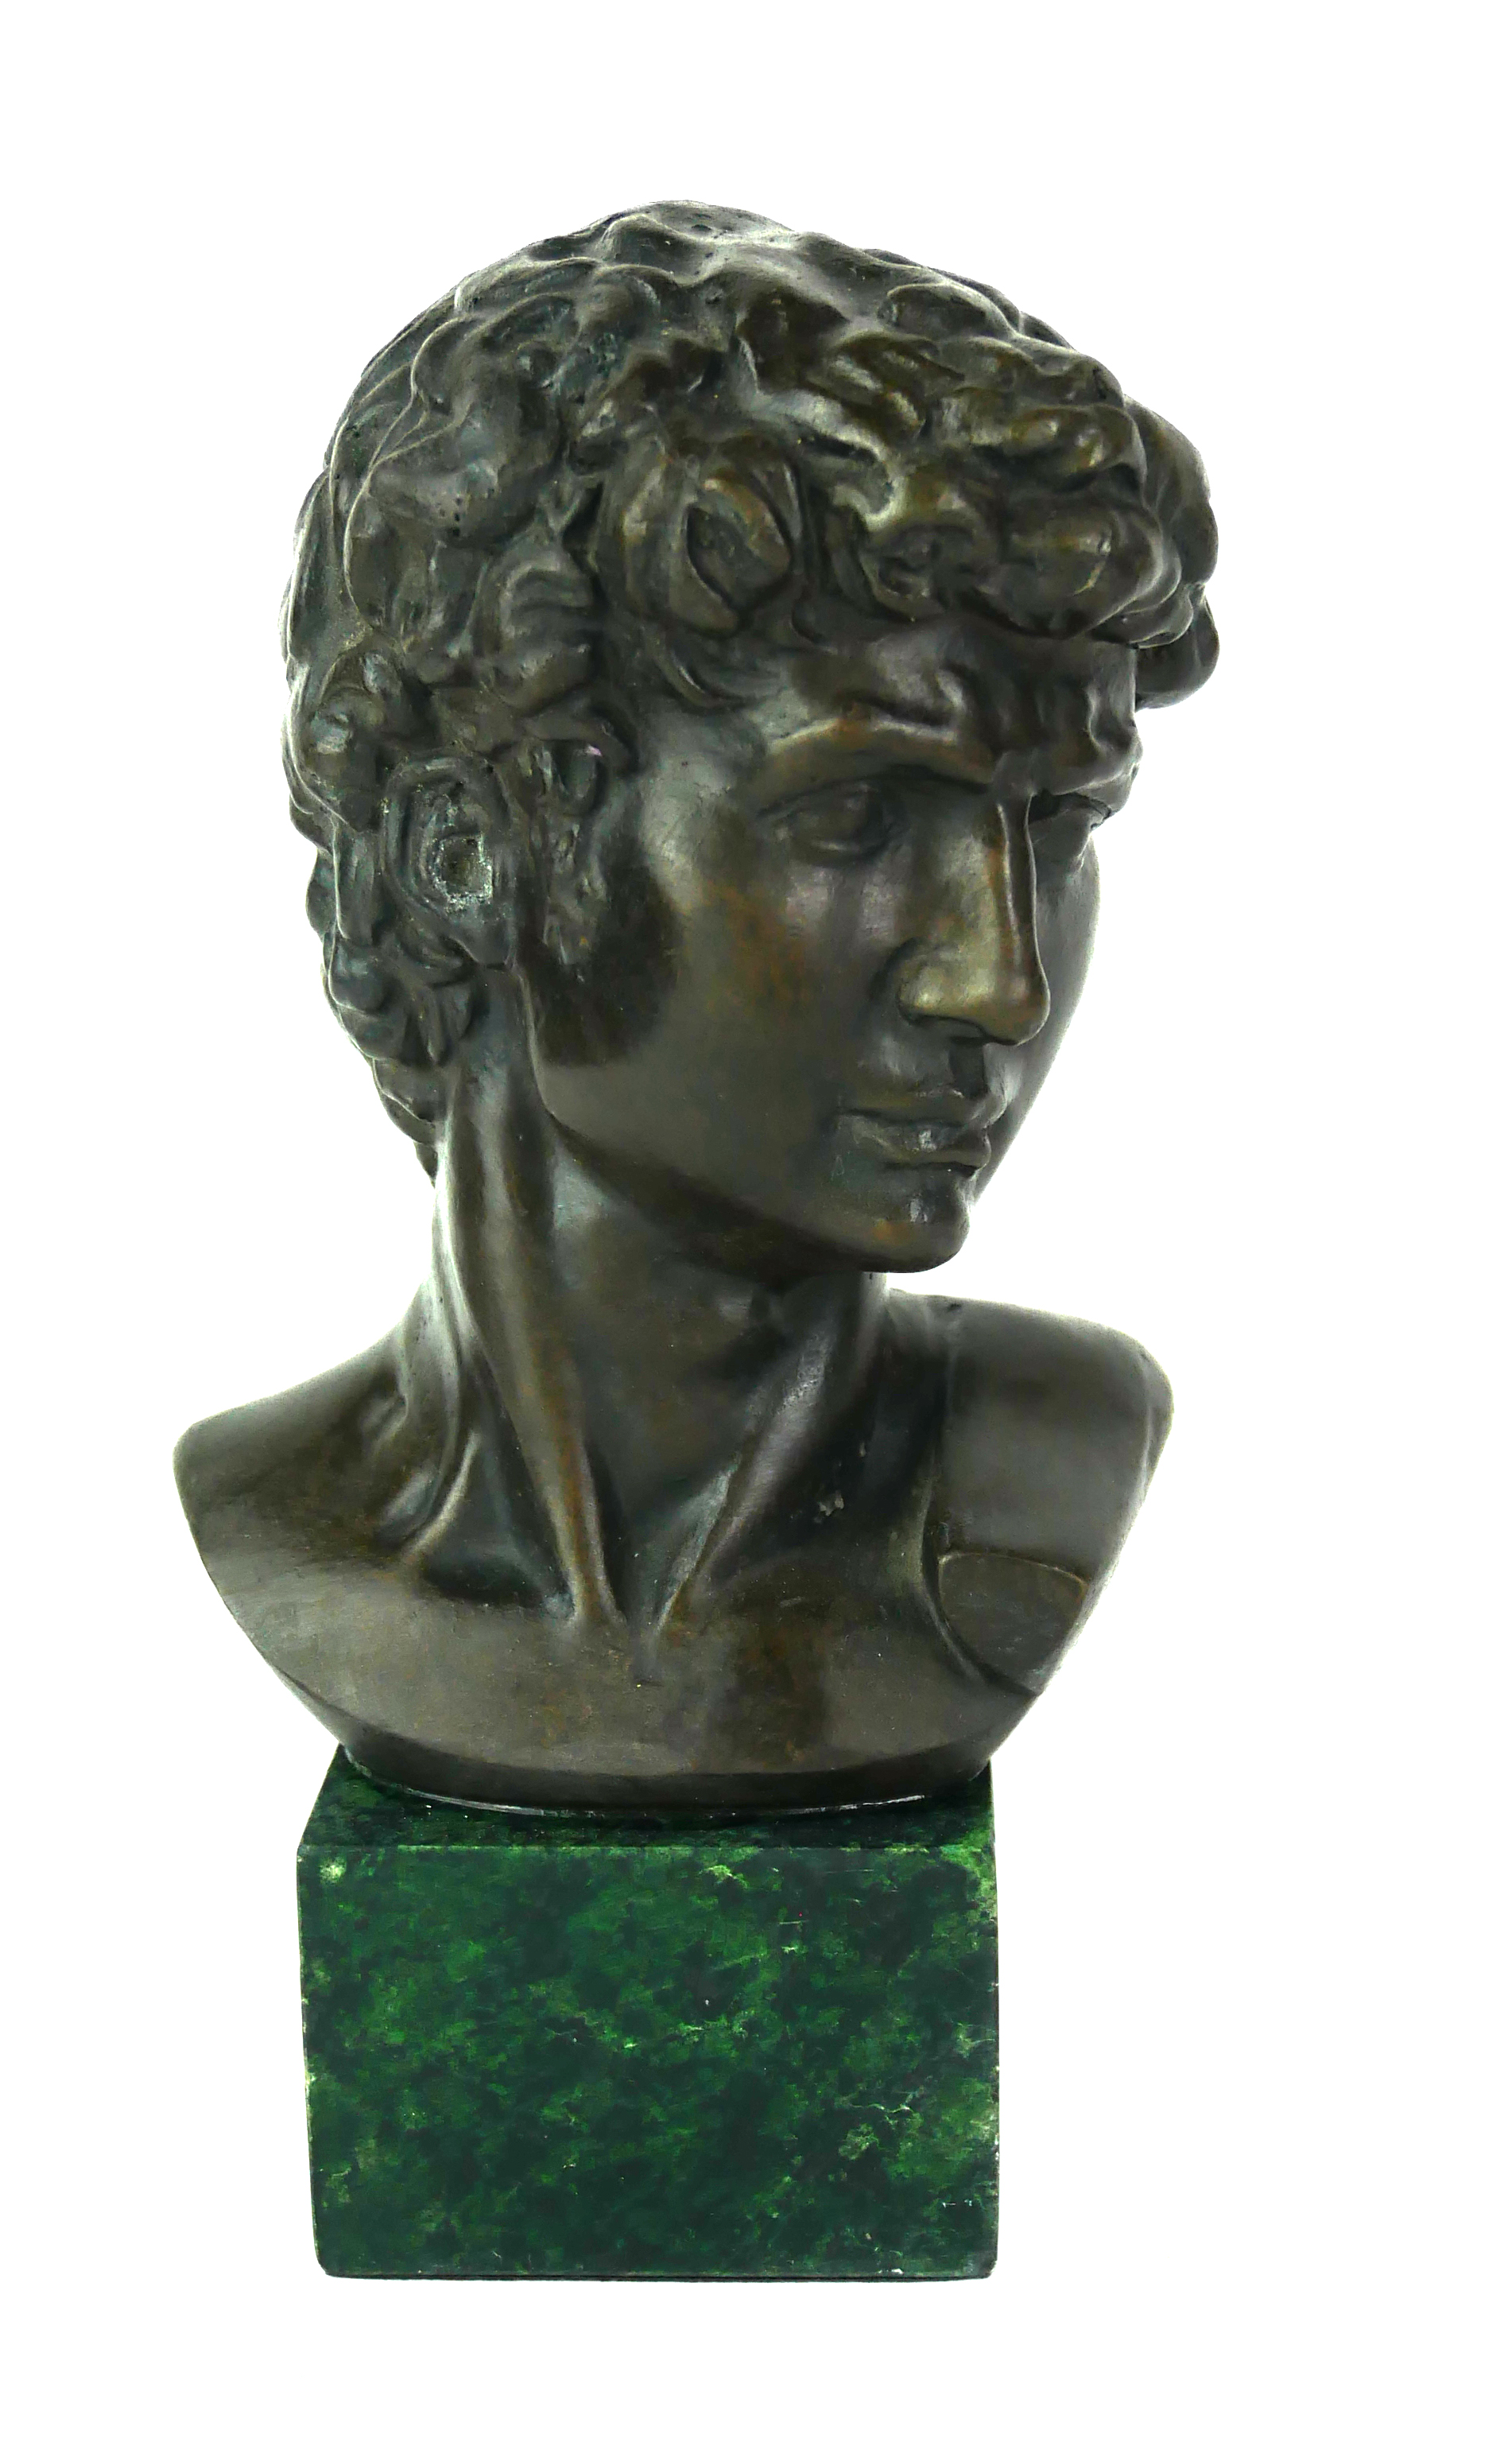 A MODERN BRONZE BUST OF DAVID Raised on a modern square green marble base. (h 17cm)